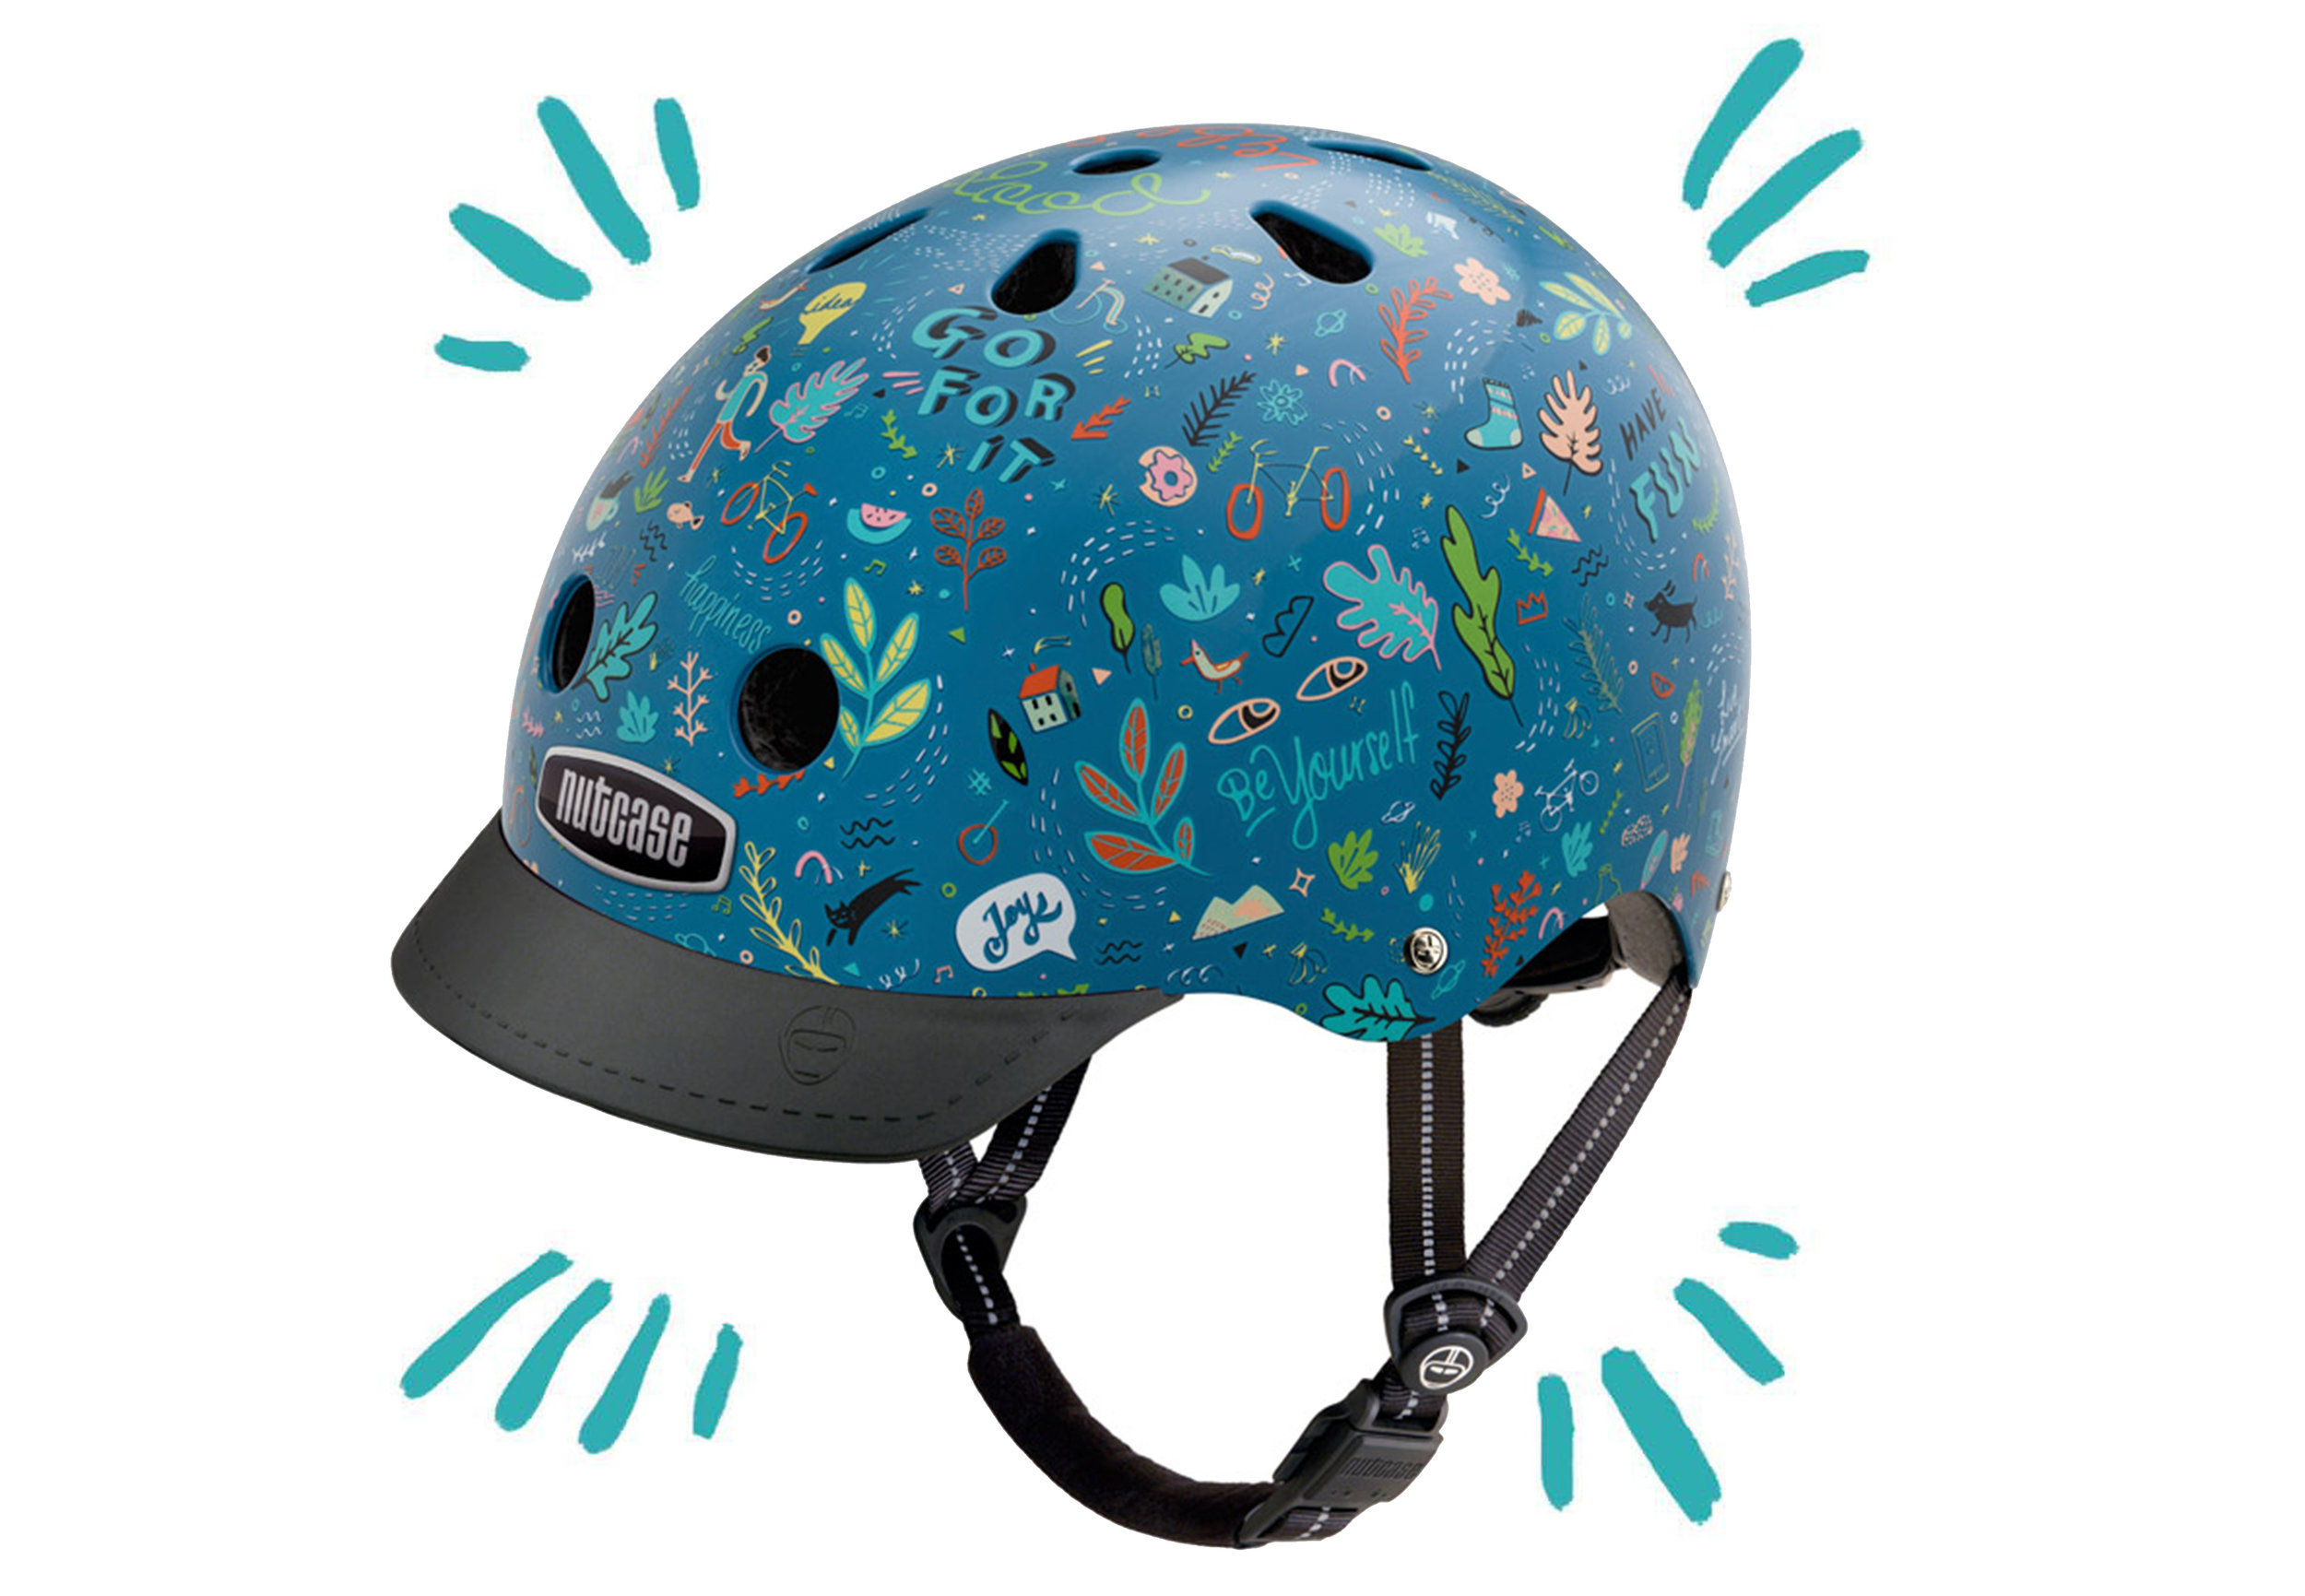 Unframed Limited Edition Helmet with  Nutcase Helmets